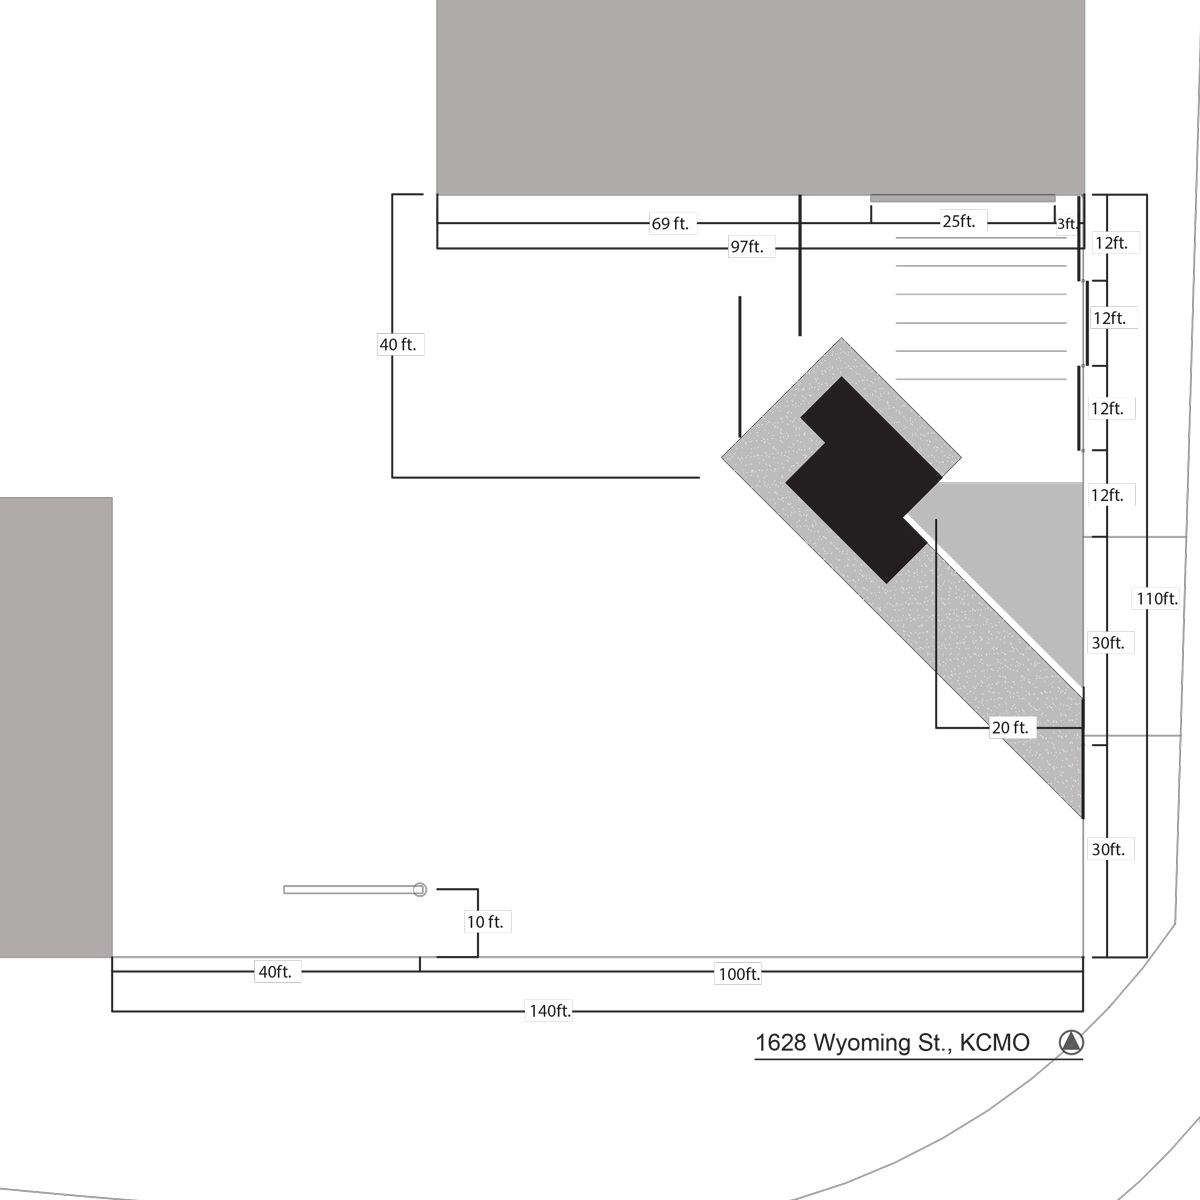 site-plan-with-measurements.jpg